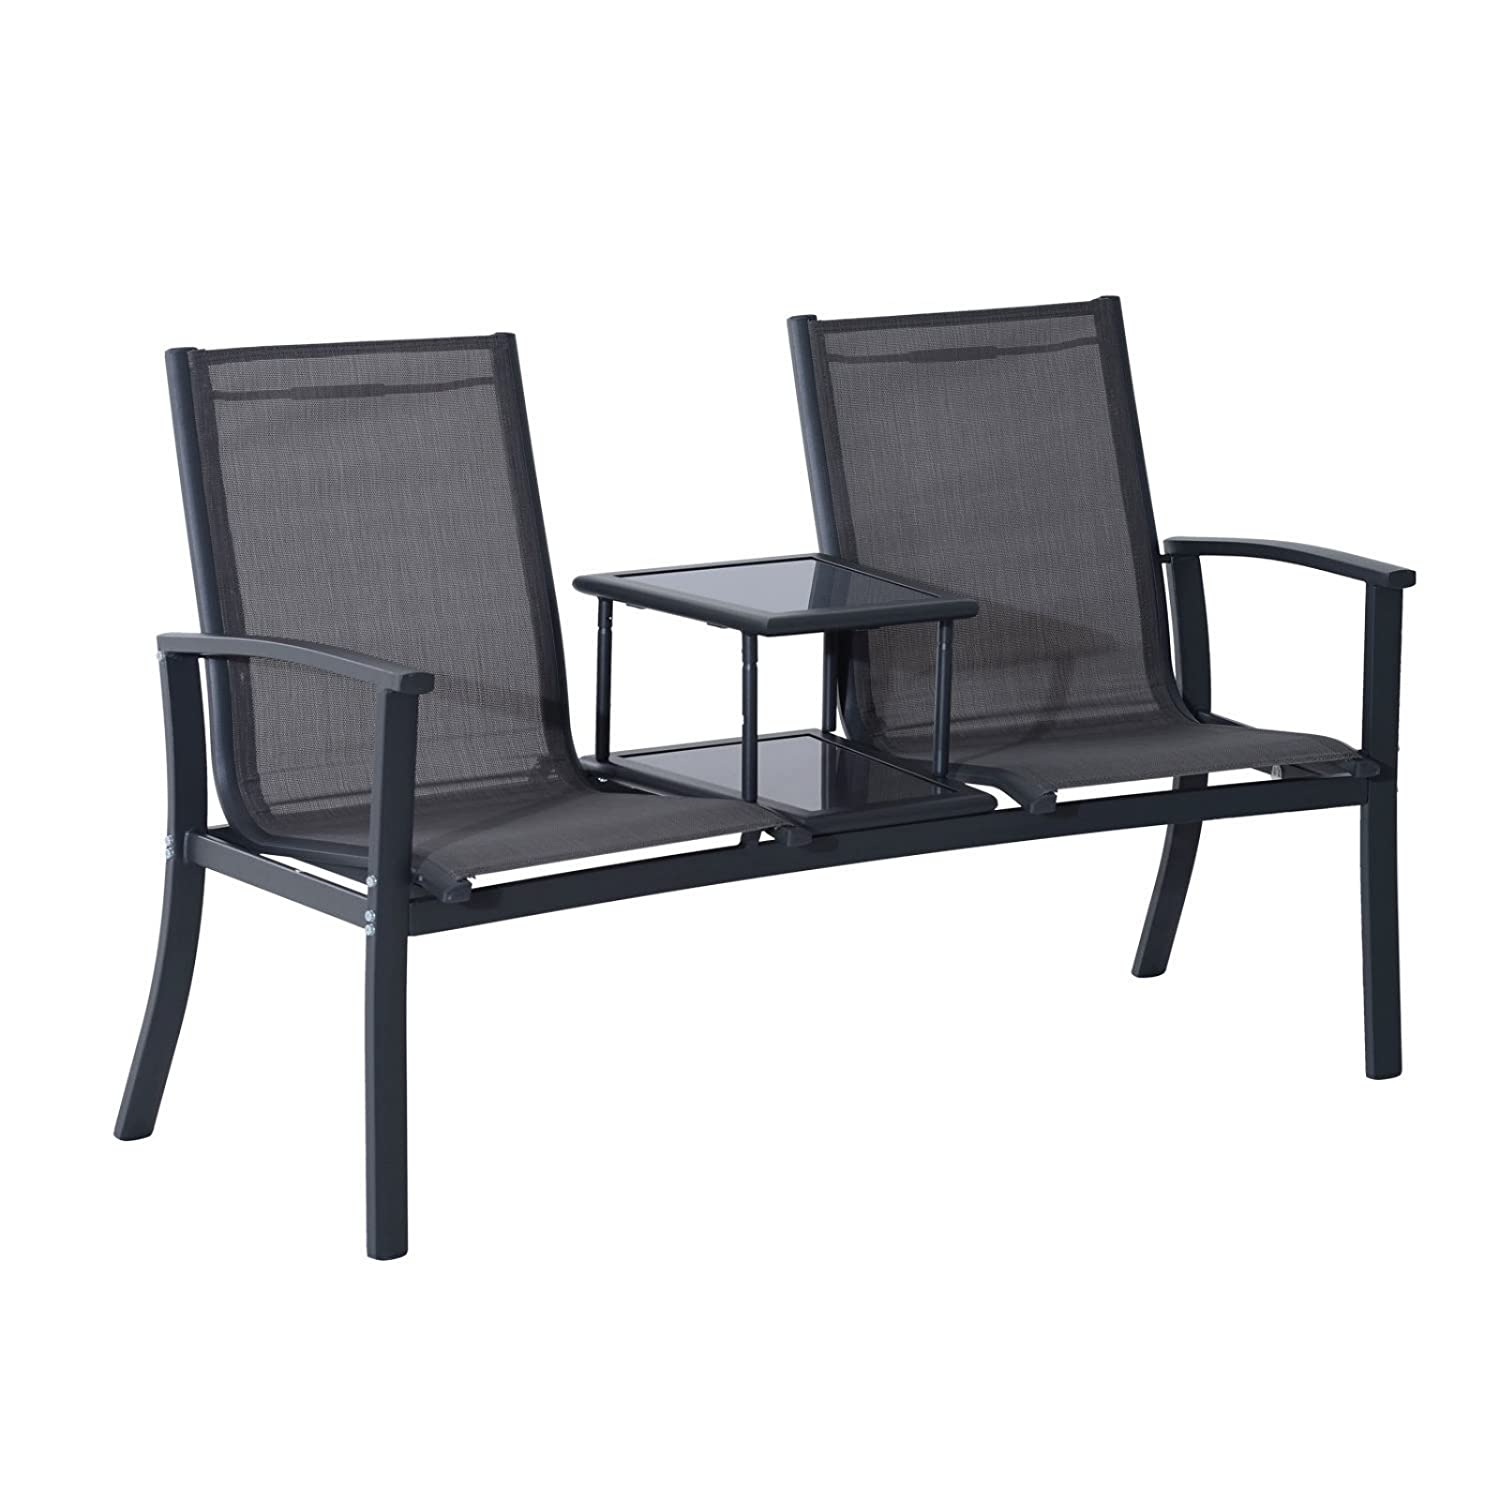 Outdoor Double Seat Bench Patio Chair Mesh Aluminum Park Garden Furniture W/ Elevated Table #705d